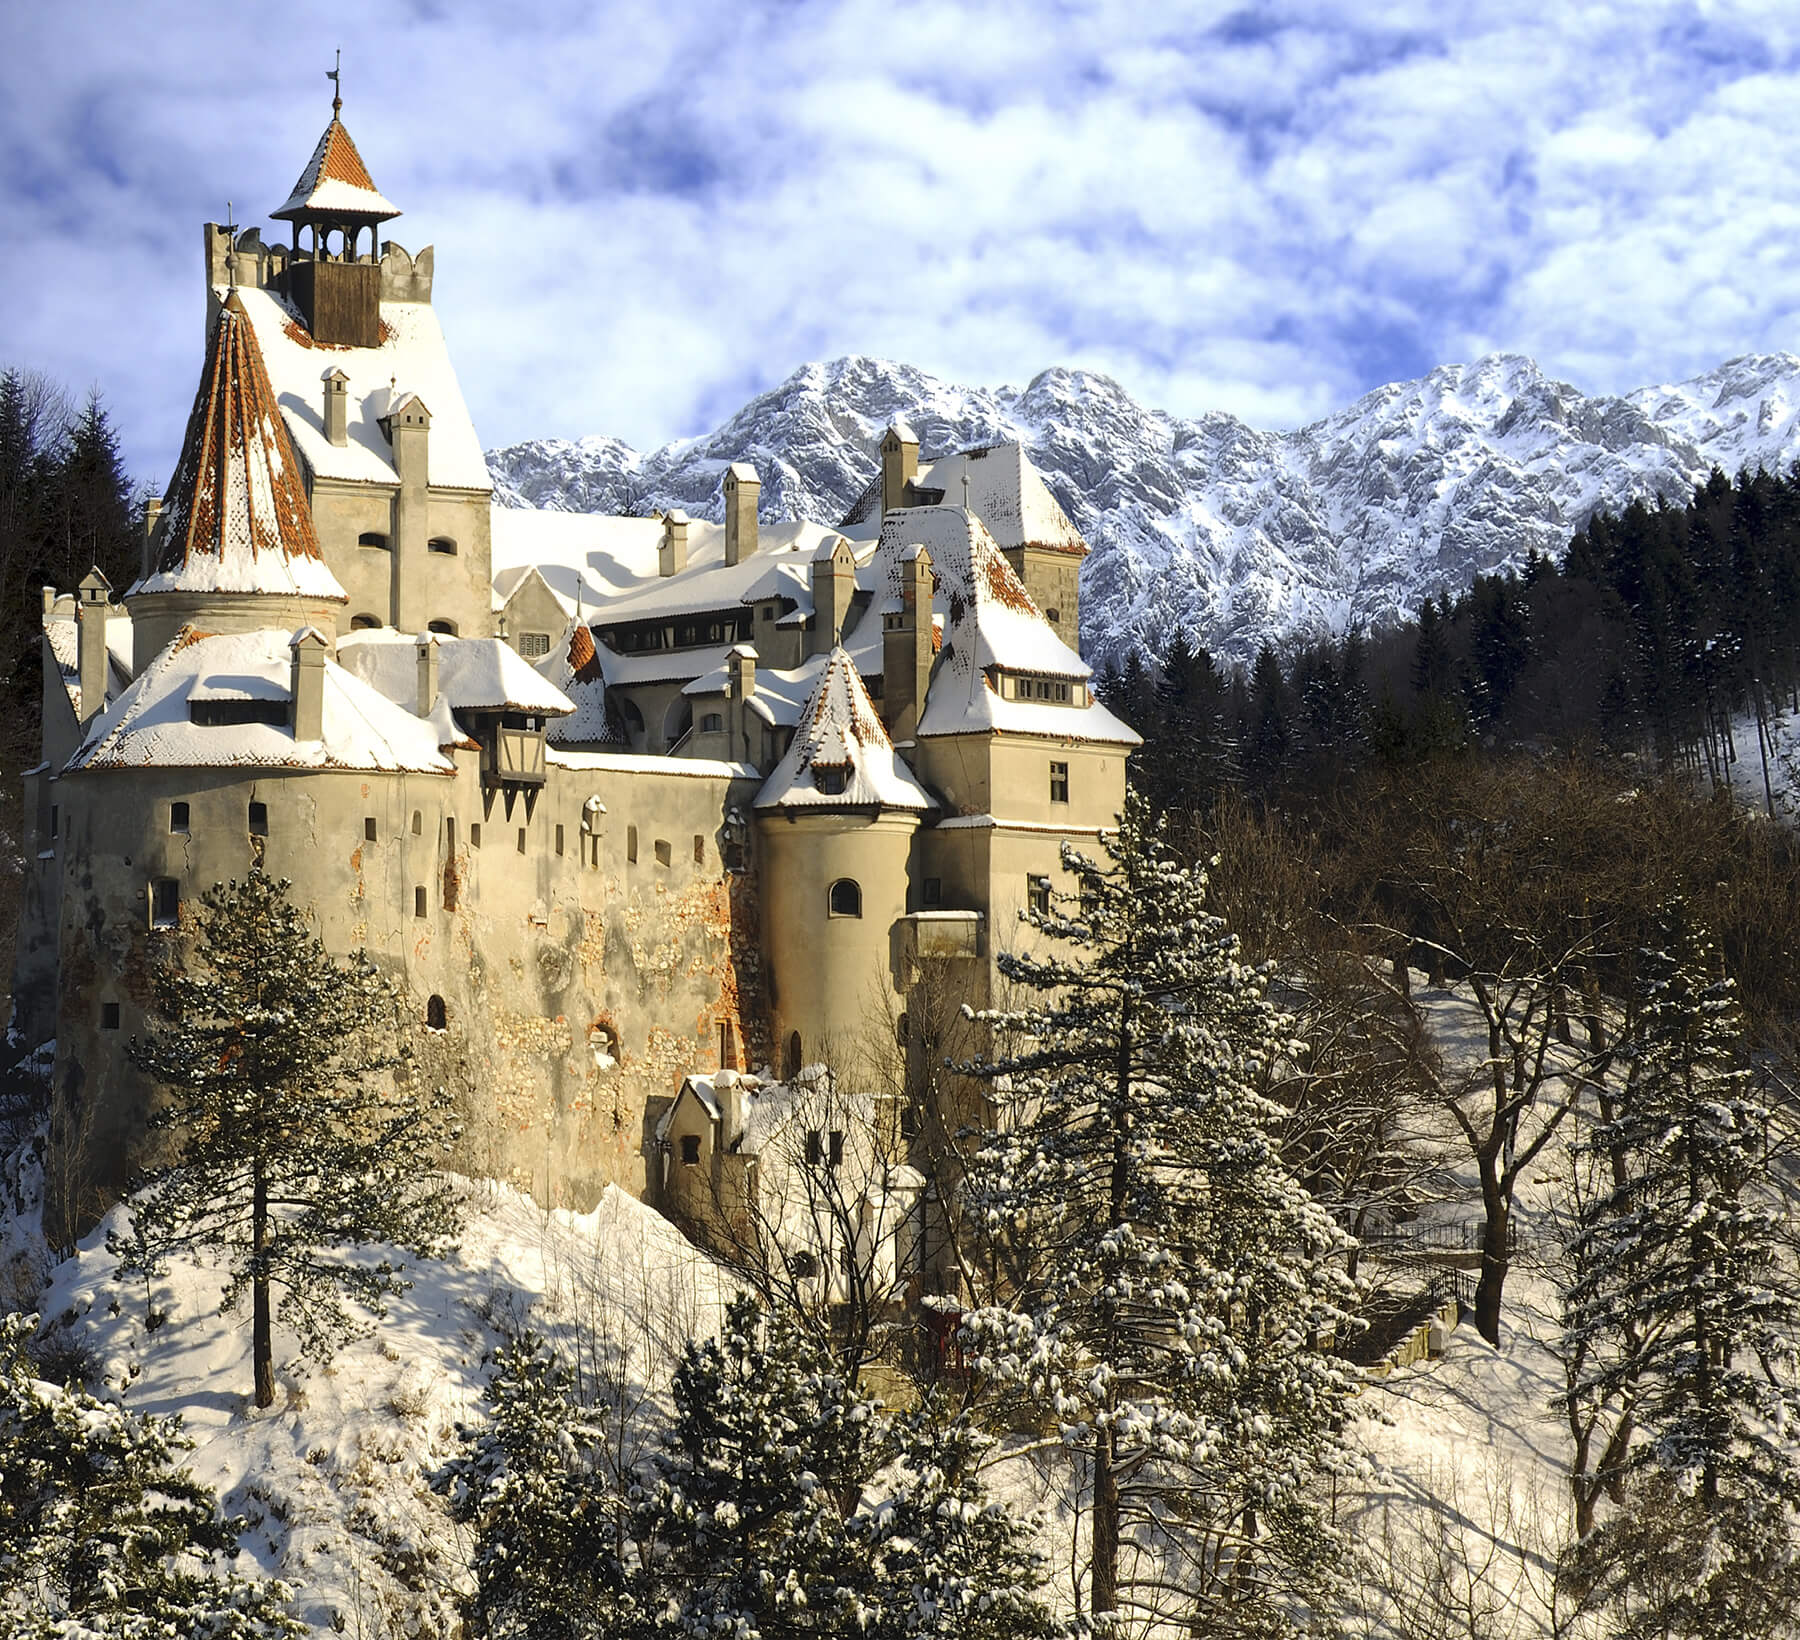 Bran, Romania - March 01, 2009 : Dracula's Bran Castle in winter with snow and Piatra Craiului (Carpathians) mountains.